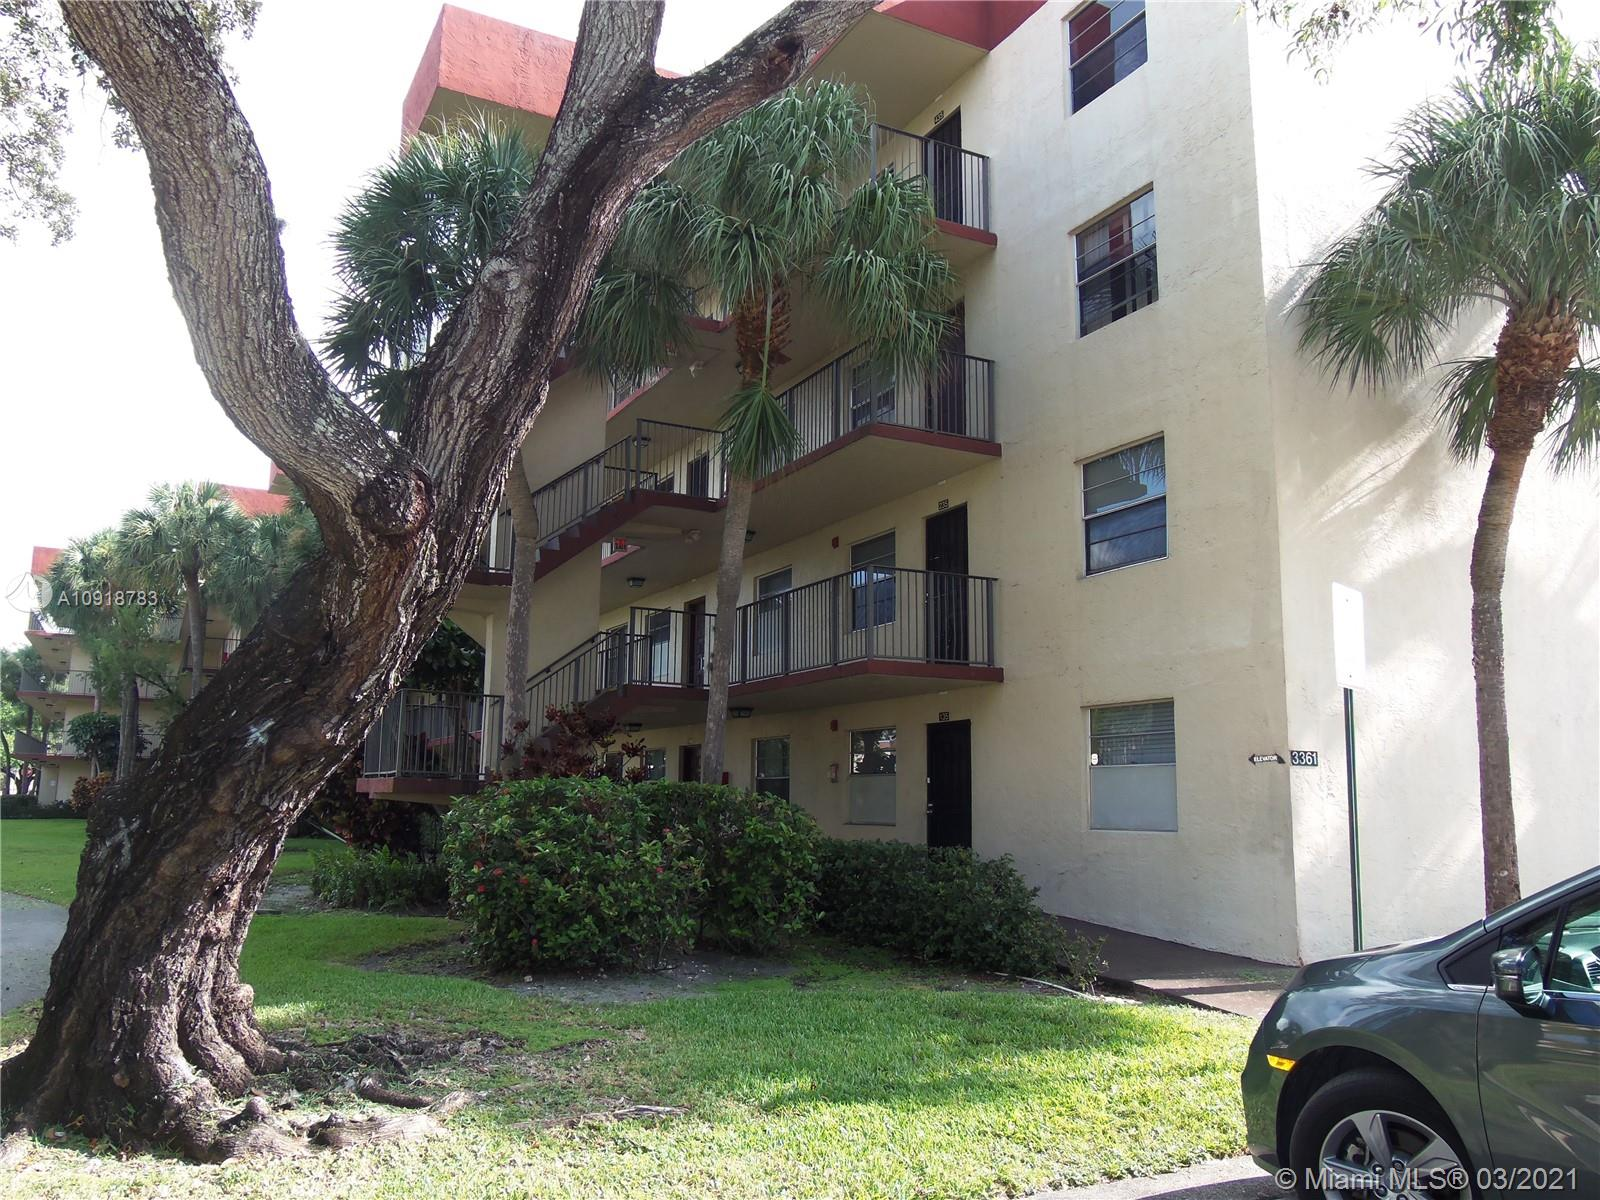 SPACIOUS 2 BEDROOMS 2 BATHROOMS CONDO IN CYPRESS CHASE NORTH. FIRST FLOOR UNIT OFFERING BEAUTIFUL LAKE VIEW IN GATED COMMUNITY. CARPET IN BEDROOMS AND TILE THROUGHOUT LIVING AREAS. SCREENED PATIO. CLOSE TO SHOPPING AND TRANSPORTATION. ALL AGES WELCOME!!